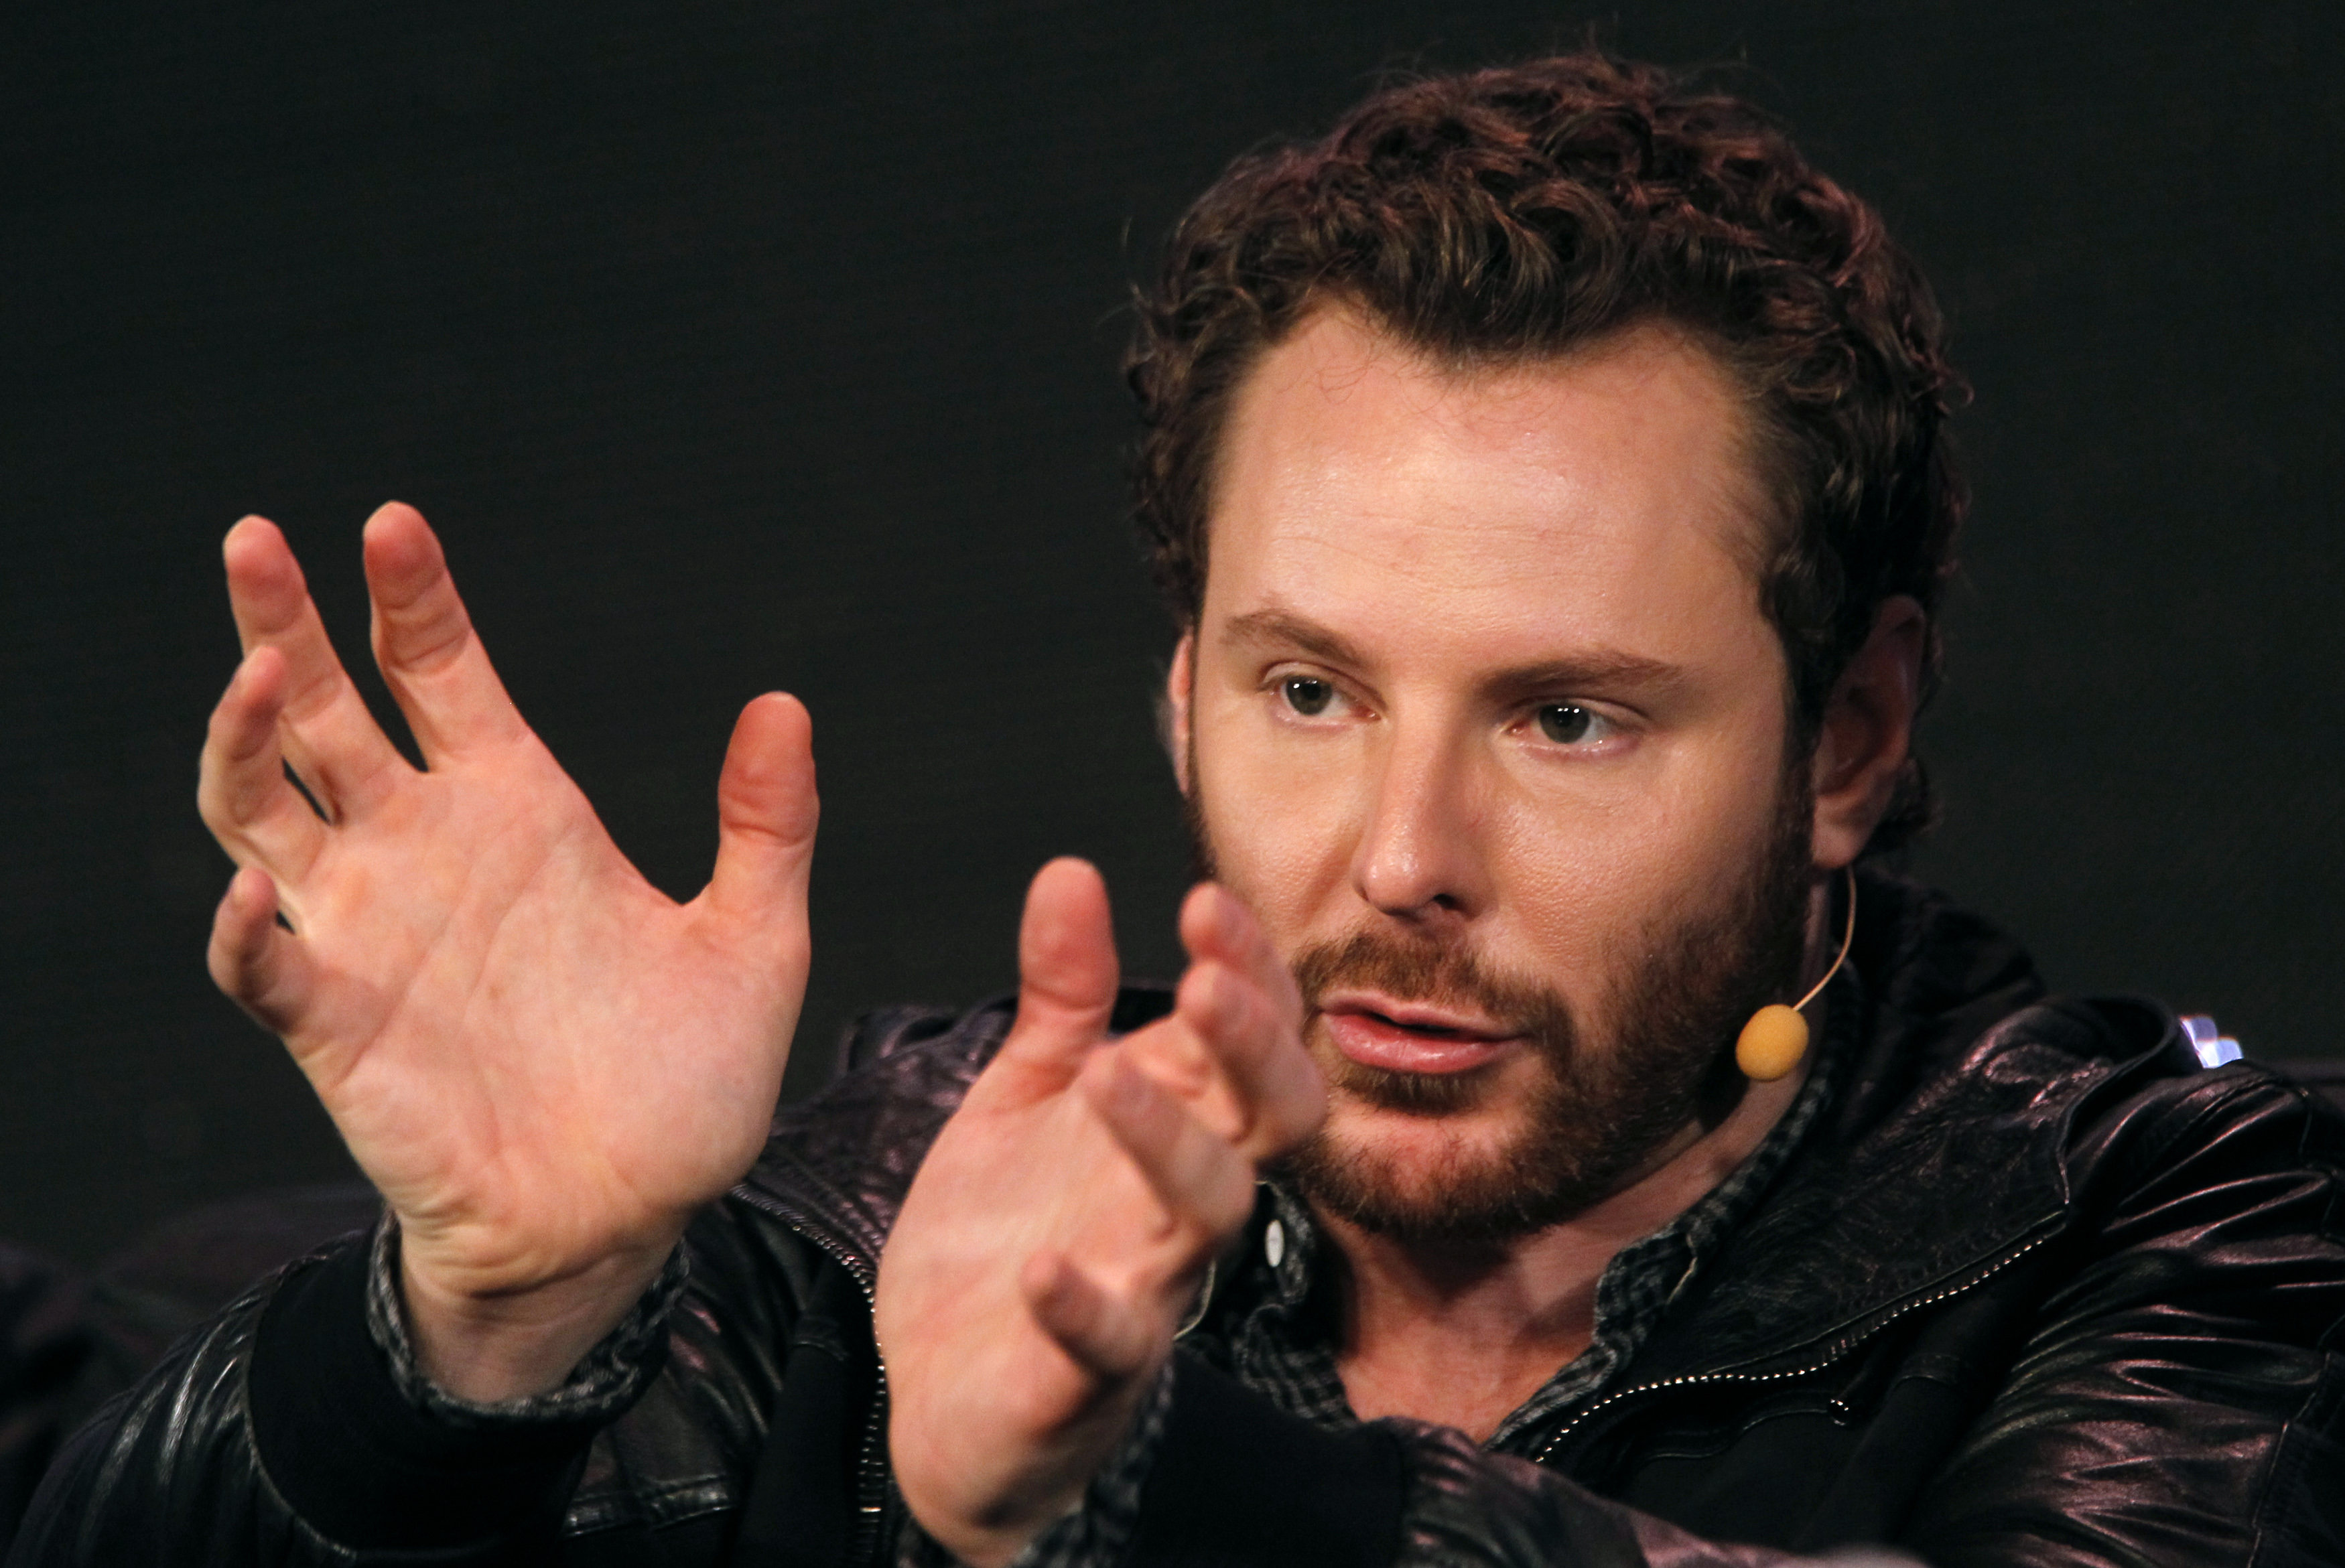 Napster founder and former Facebook president Sean Parker gestures during the Web 2.0 Summit in San Francisco